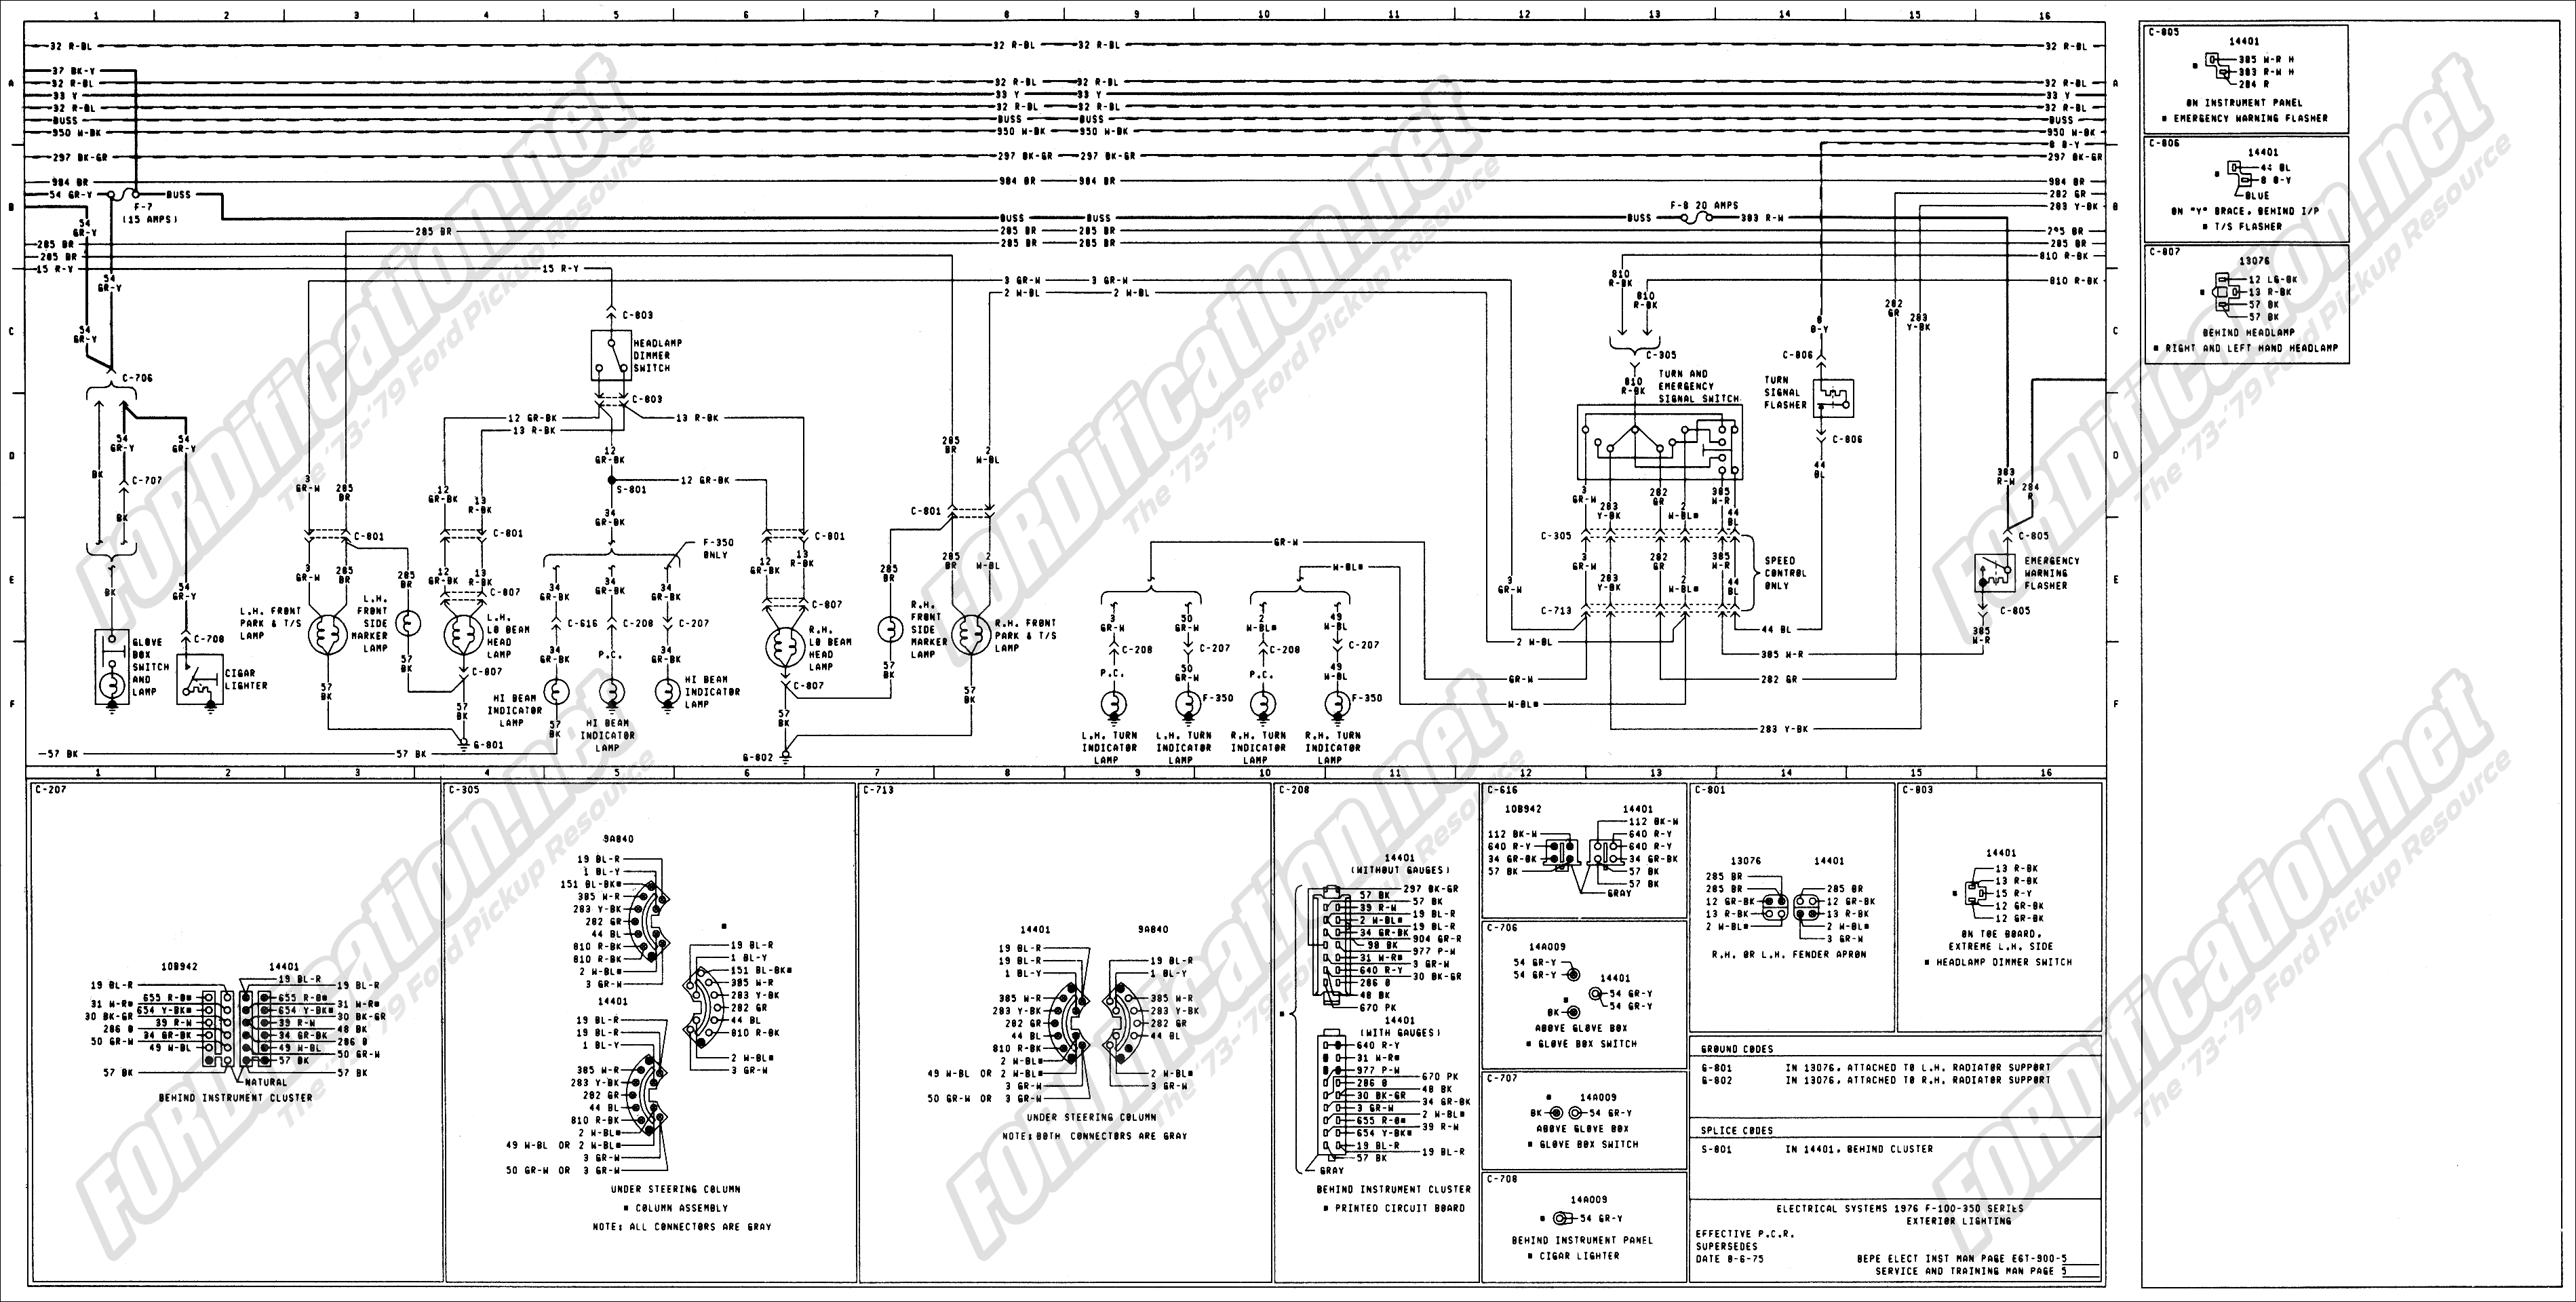 wiring_76master_5of9 1973 1979 ford truck wiring diagrams & schematics fordification net  at mifinder.co